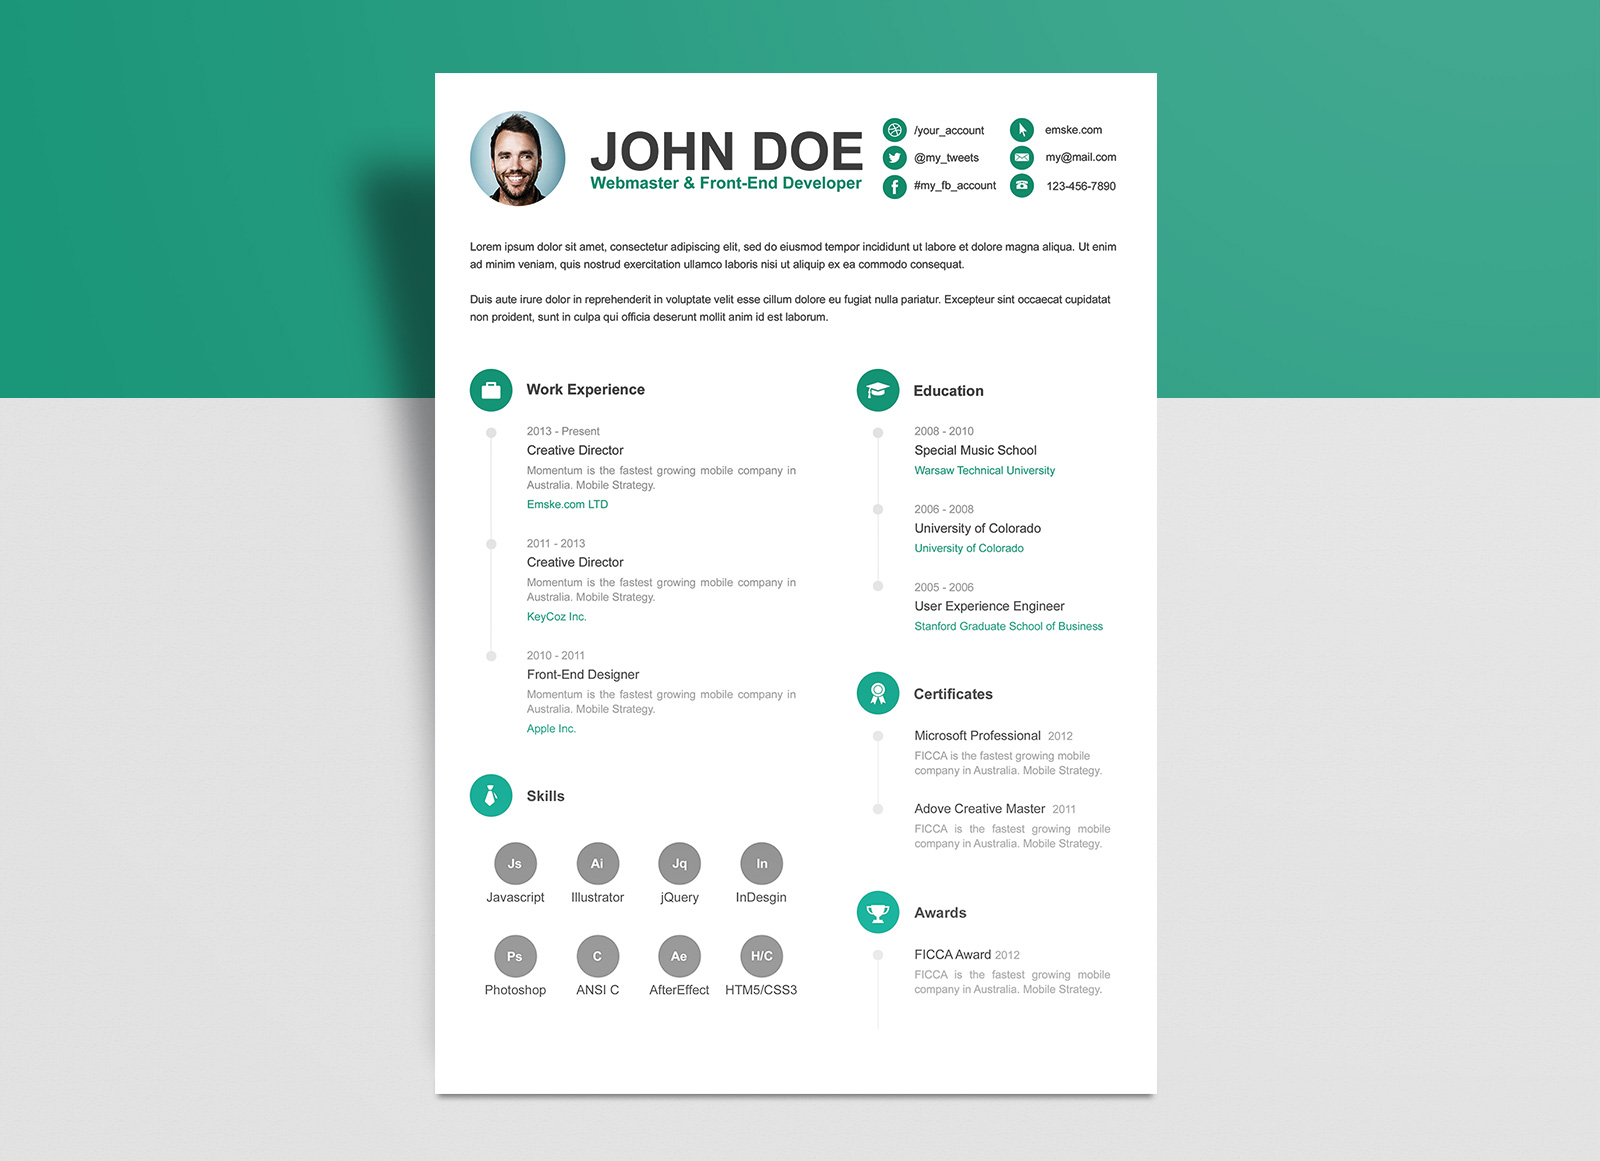 Free-PSD-Resume-CV-Template-for-Webmaster-&-Front-End-Developer-2